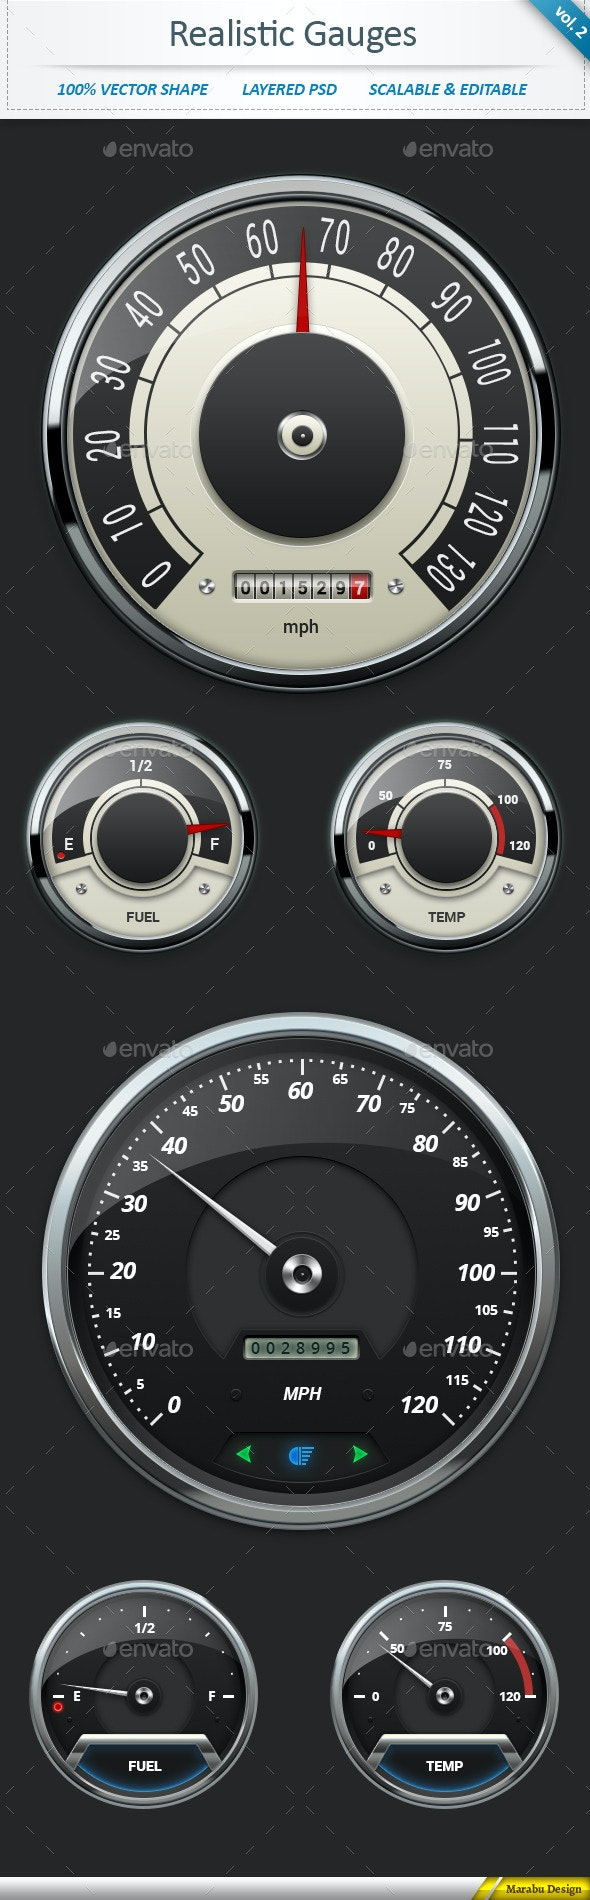 Realistic Car Gauges (vol 2) - Technology Isolated Objects